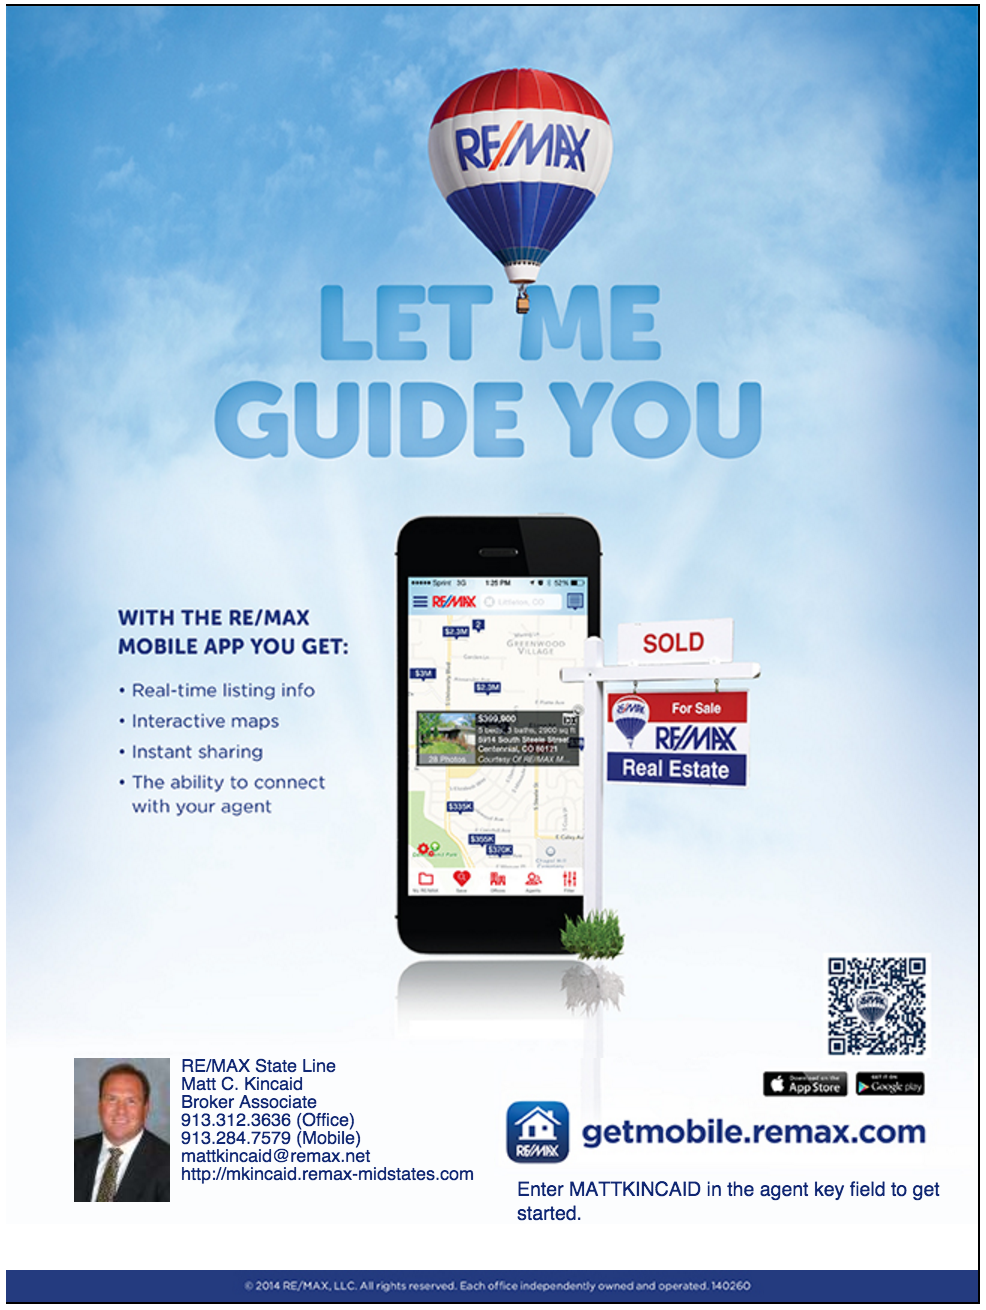 RE/MAX Mobile App - Matt Kincaid Real Estate